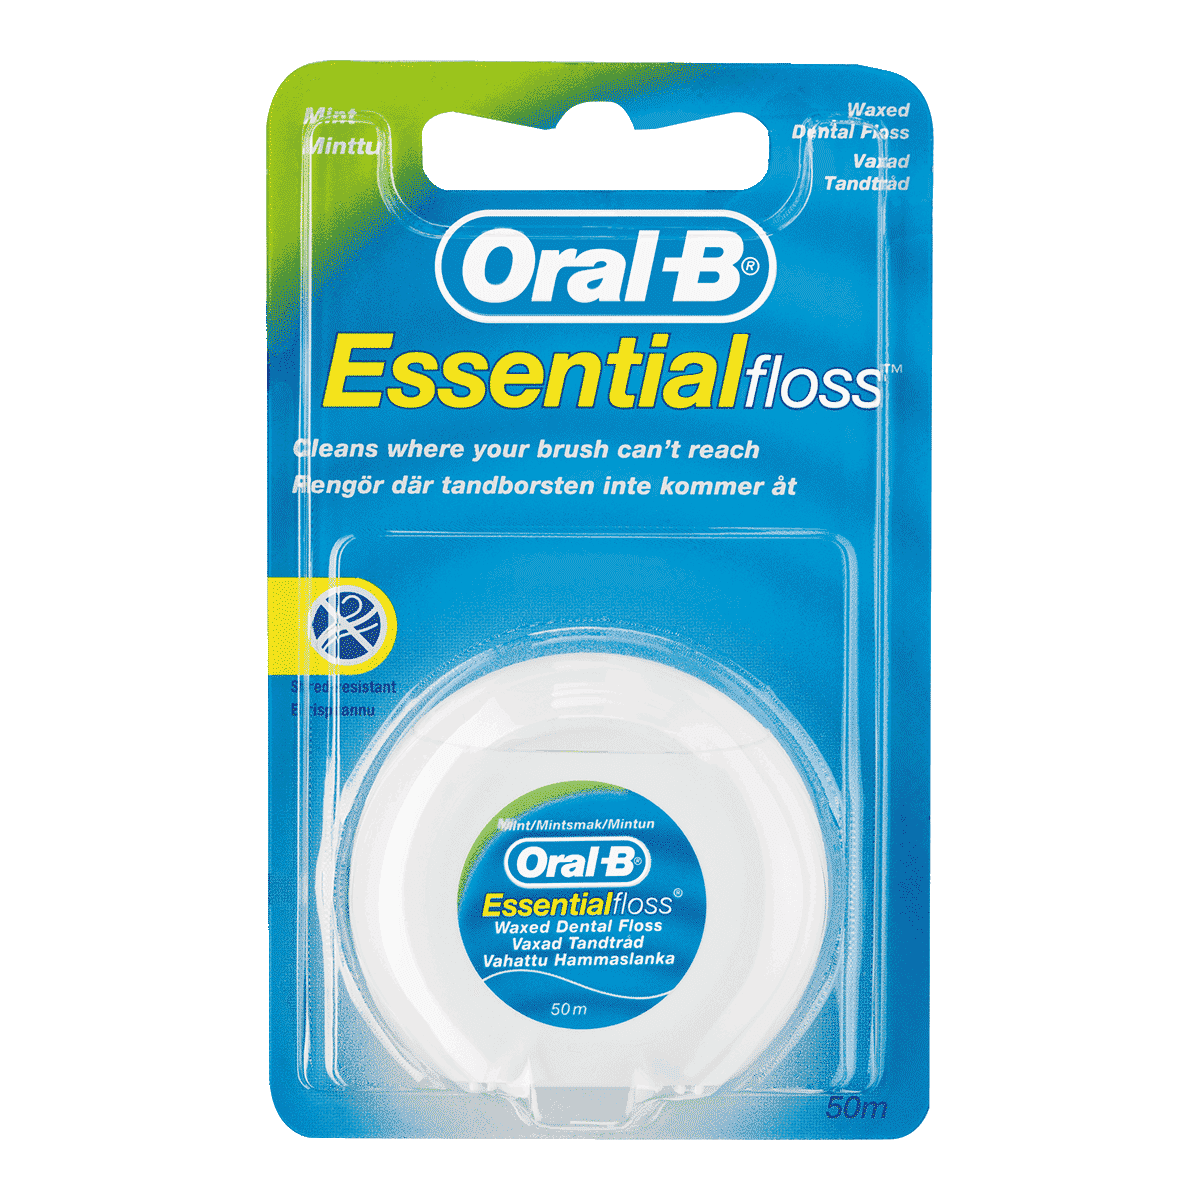 Oral-B Essential Mint Floss